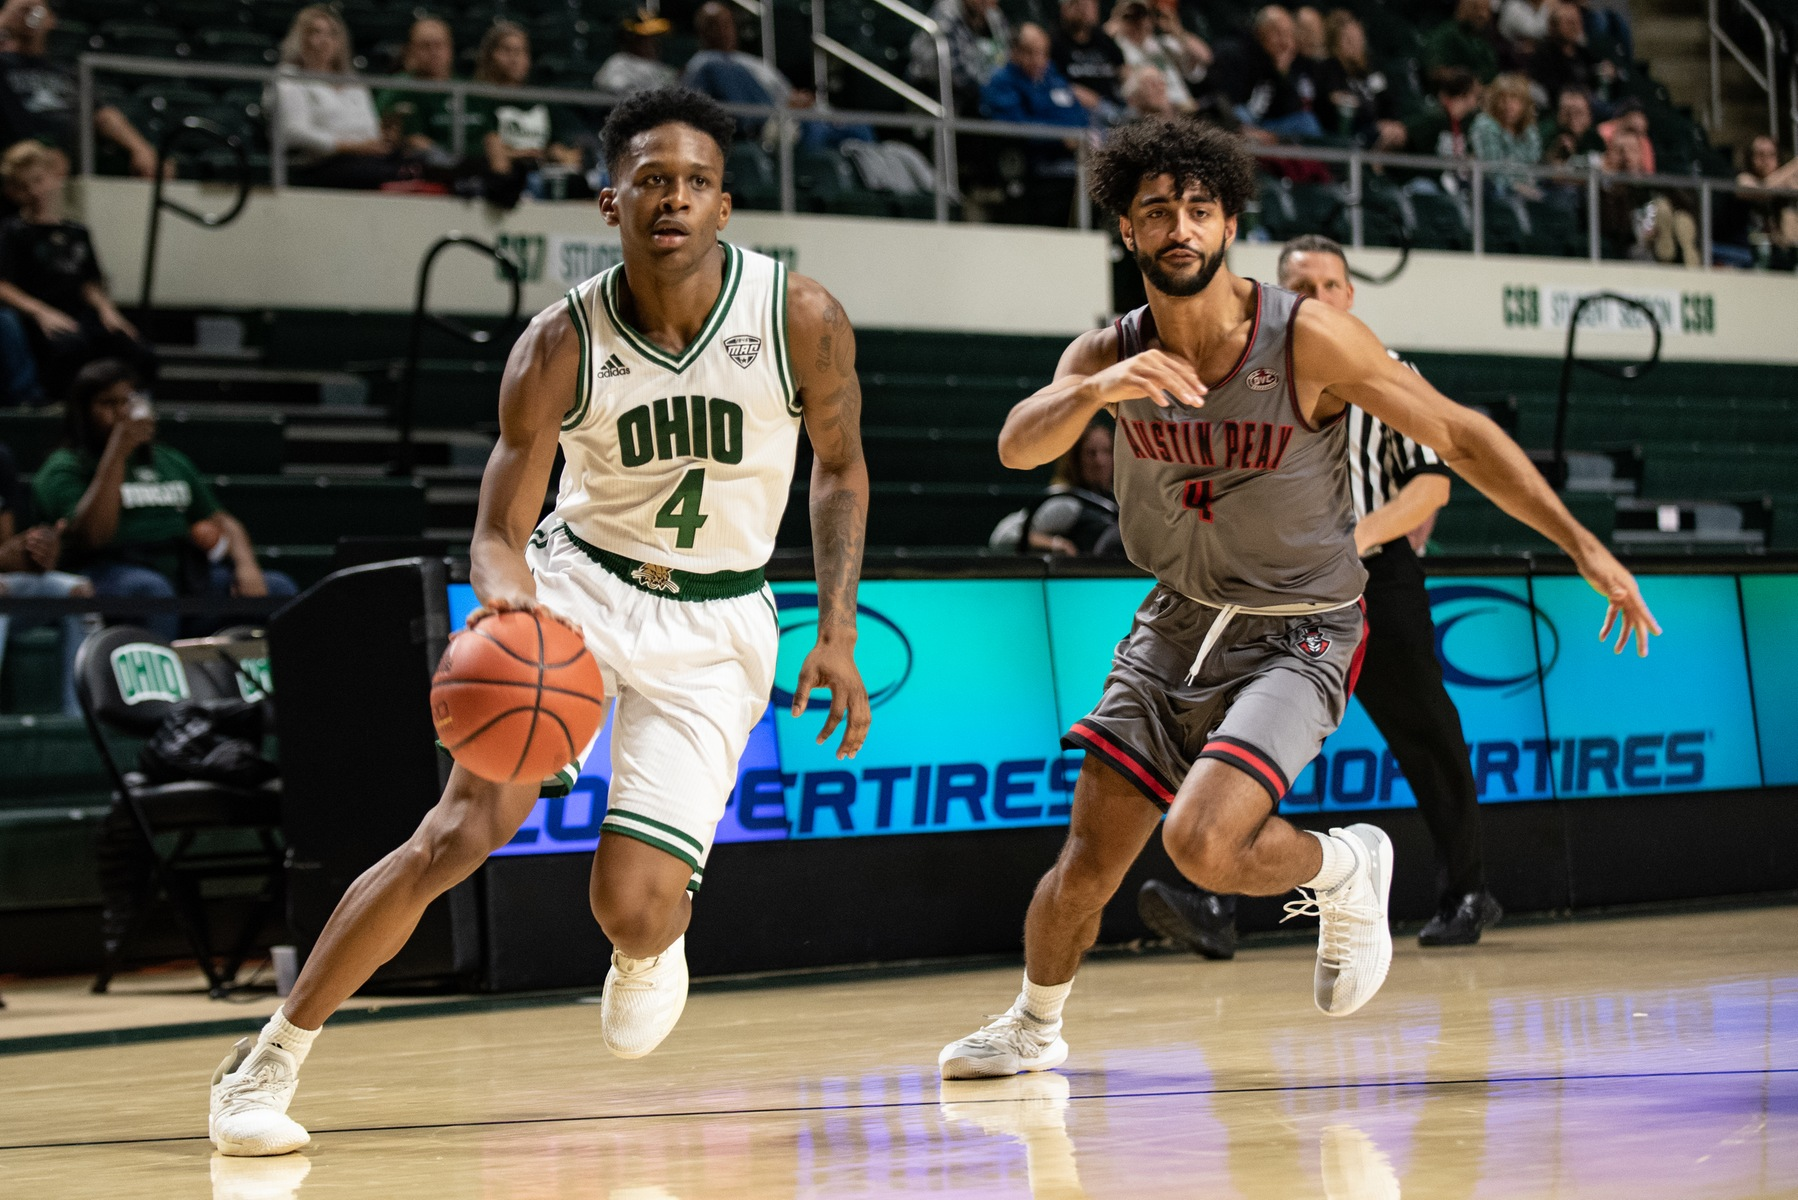 Carter, Kirk Lead Ohio Men's Basketball Past Austin Peay, 85-82, in Overtime